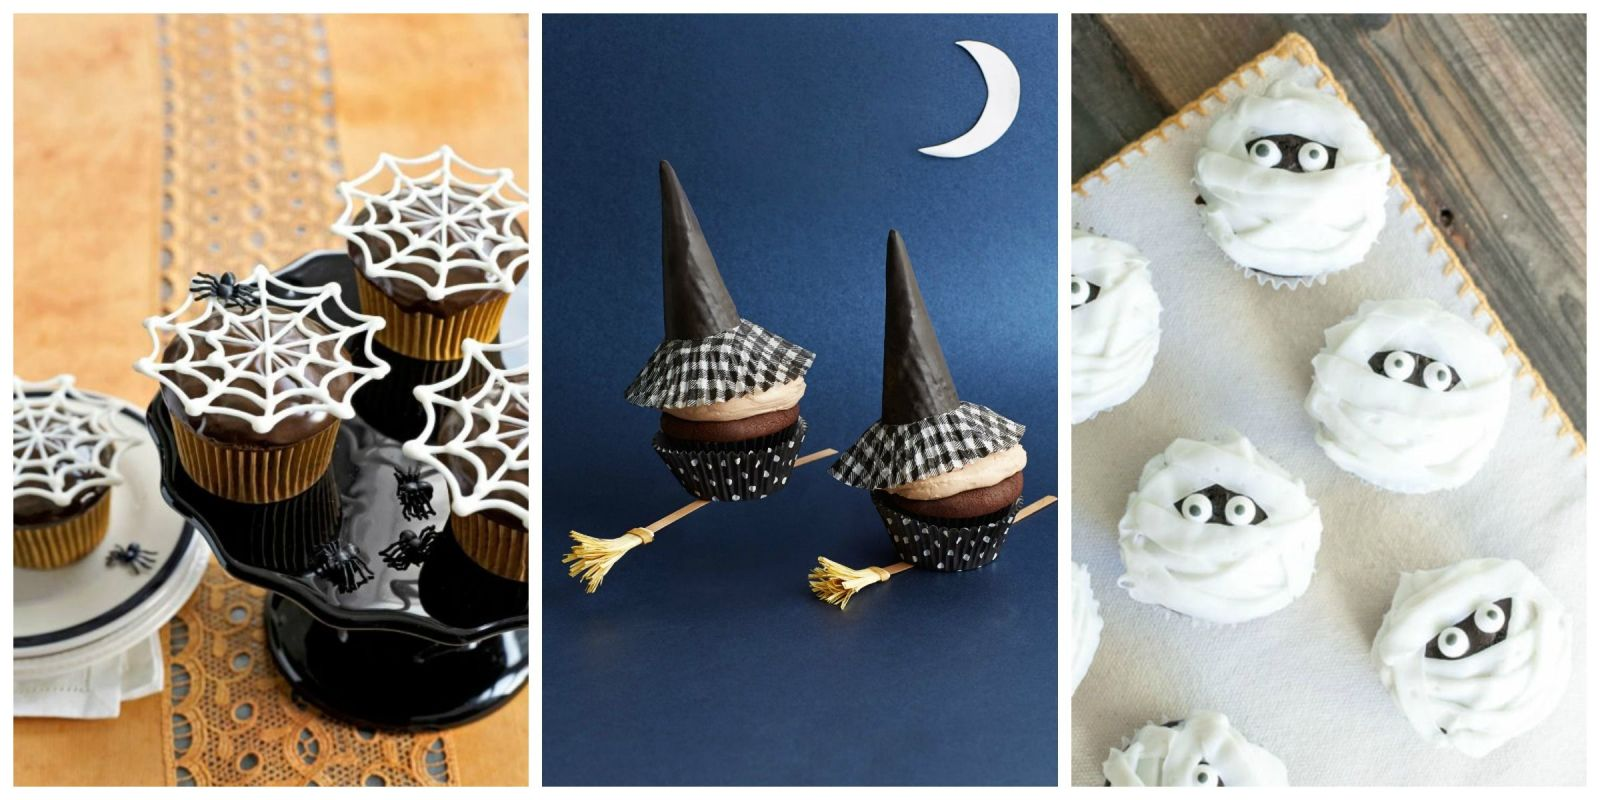 30 halloween cupcake ideas easy recipes for cute halloween cupcakes - Simple Halloween Cake Decorating Ideas